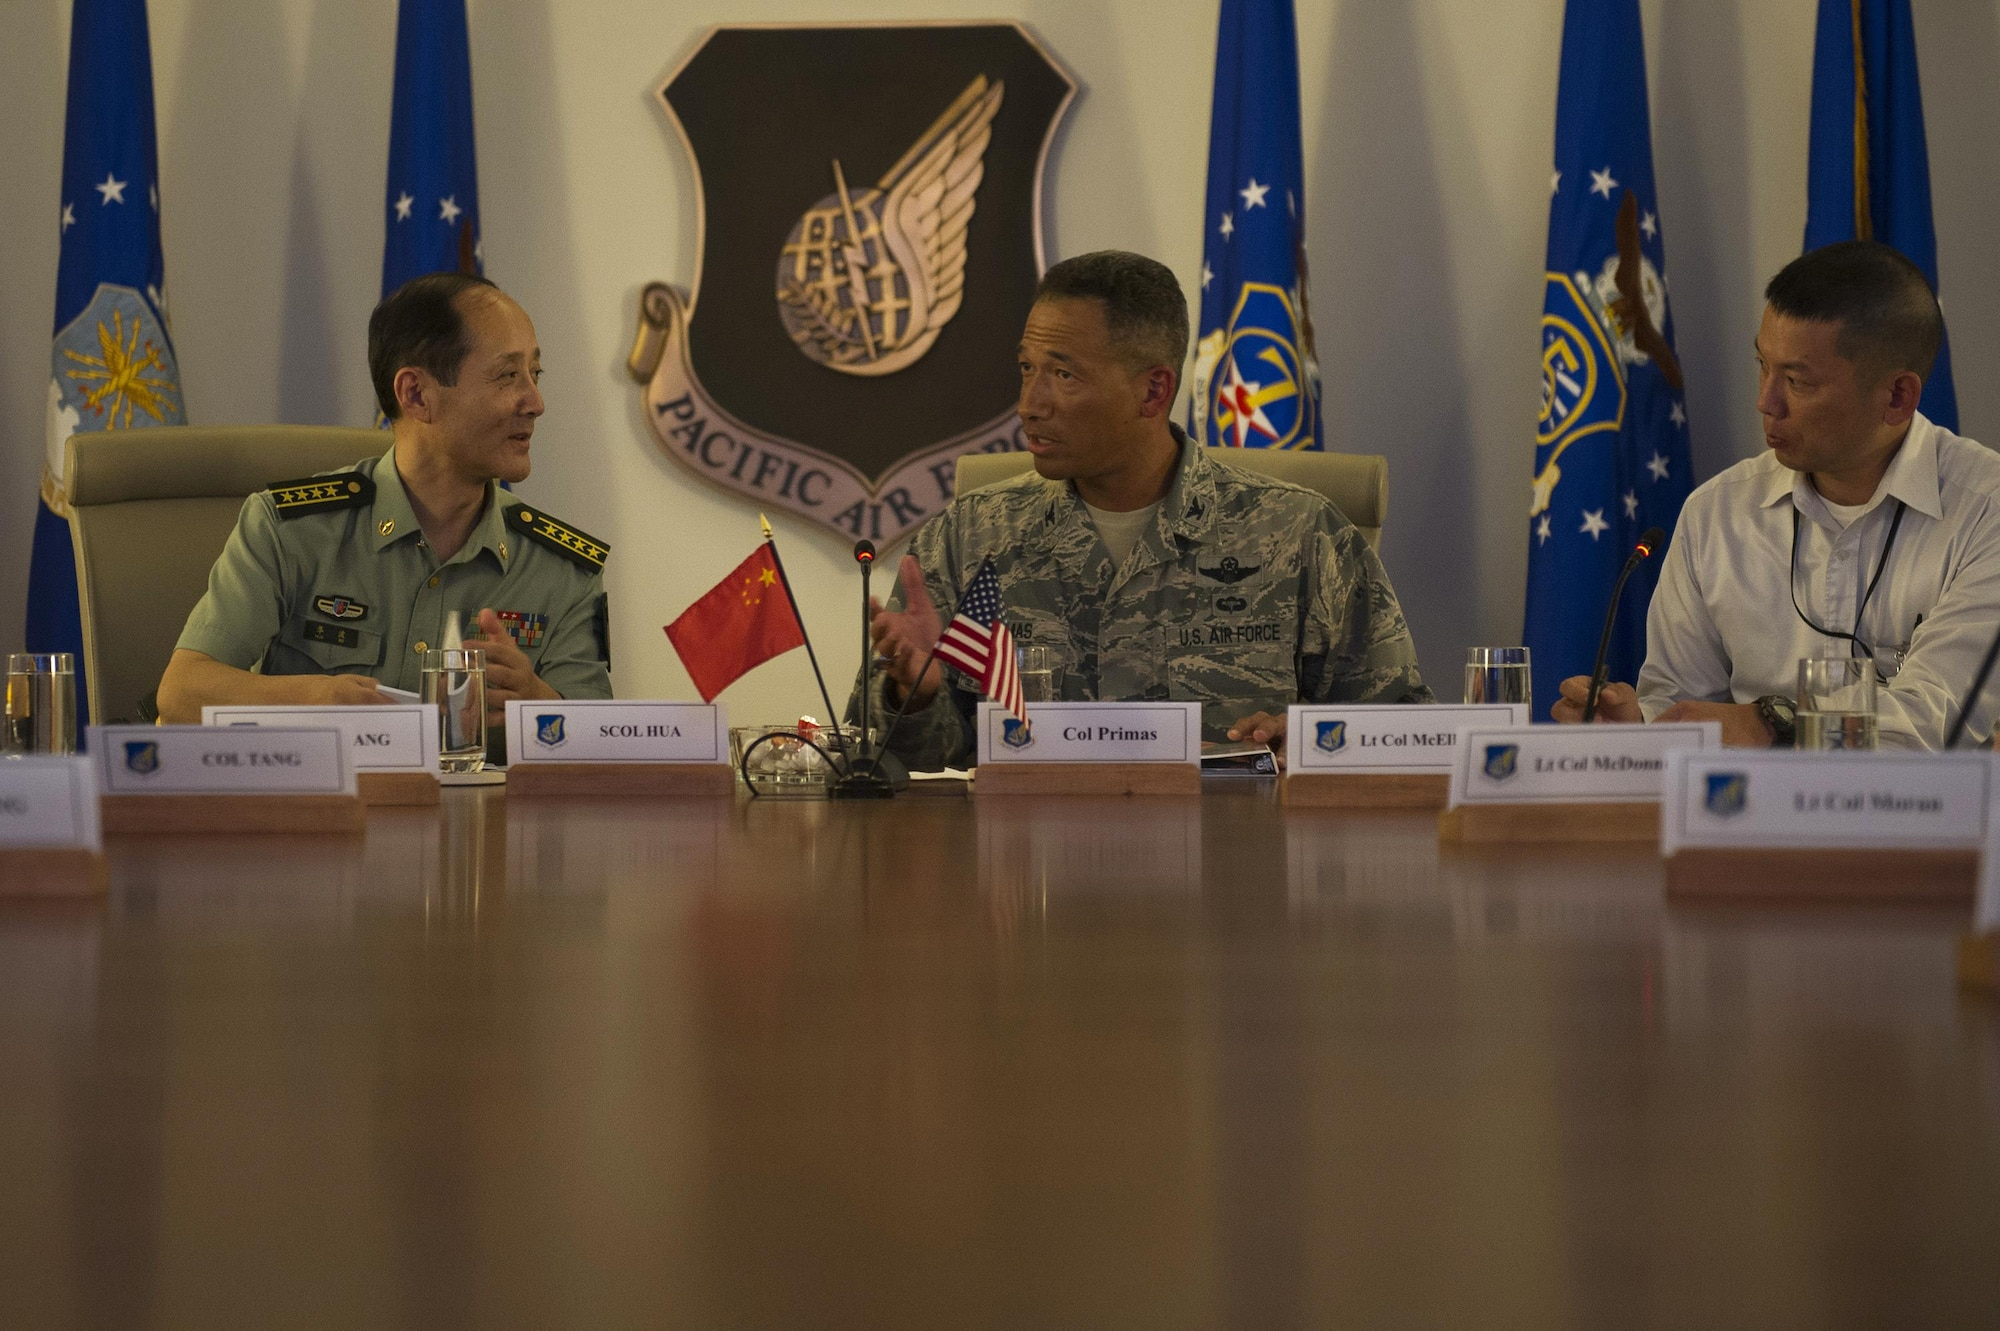 People's Liberation Army Senior Col. Hua Bo and U.S. Air Force Col. Art Primas, Pacific Air Forces International Affairs division chief, speak during a mid-level officer exchange at Joint Base Pearl Harbor-Hickam, Hawaii, Oct. 18, 2016. The PLA delegation visited PACAF as part of an annual exchange tour that included a stop at U.S. Pacific Command. (U.S. Air Force photo by Staff Sgt. Alexander Martinez)